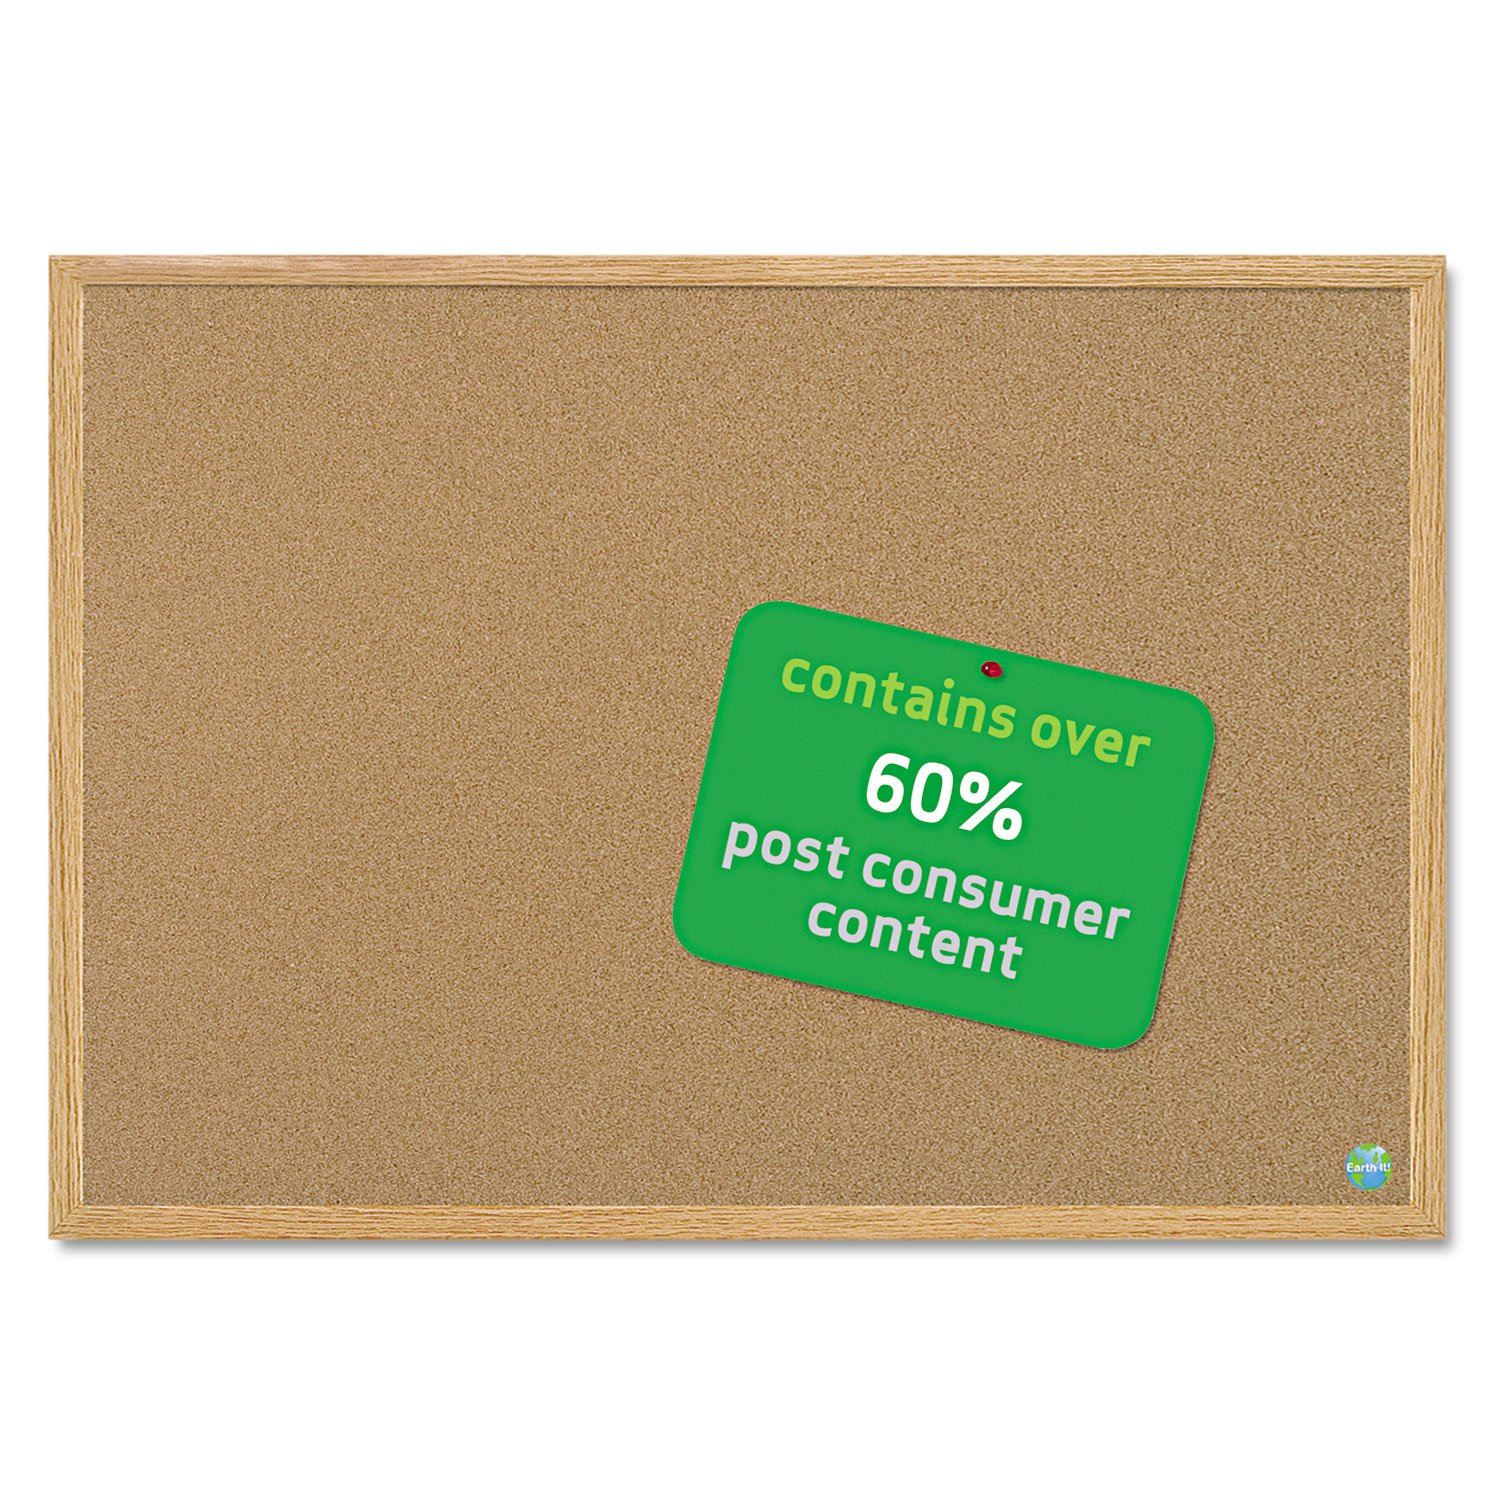 MasterVision SB0720001233 Earth Cork Board, 36 x 48, Wood Frame by MasterVision